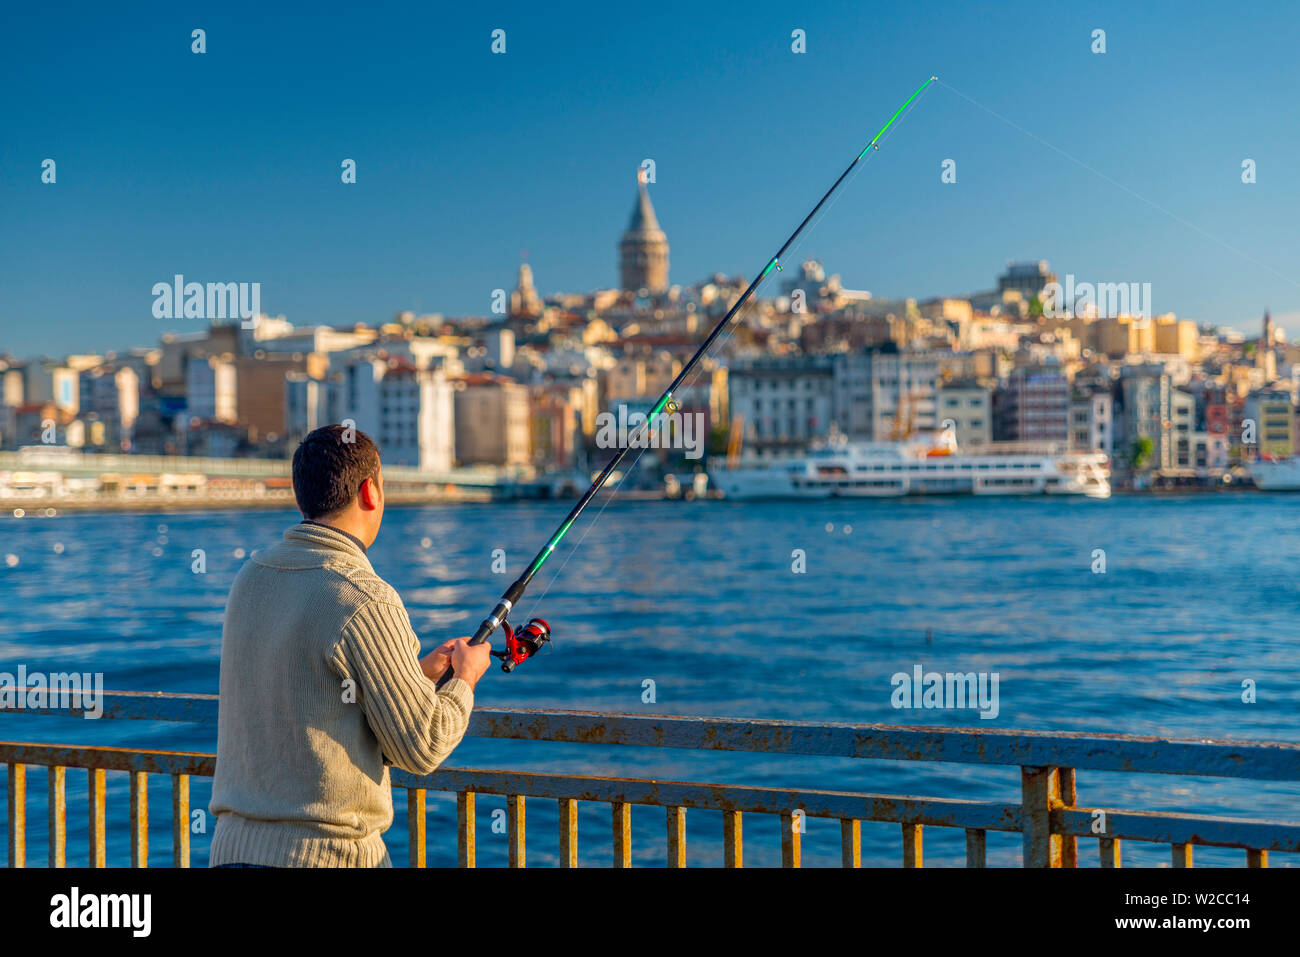 Turkey, Istanbul, Beyoglu, Golden Horn, Galata Tower in background, Man Fishing - Stock Image